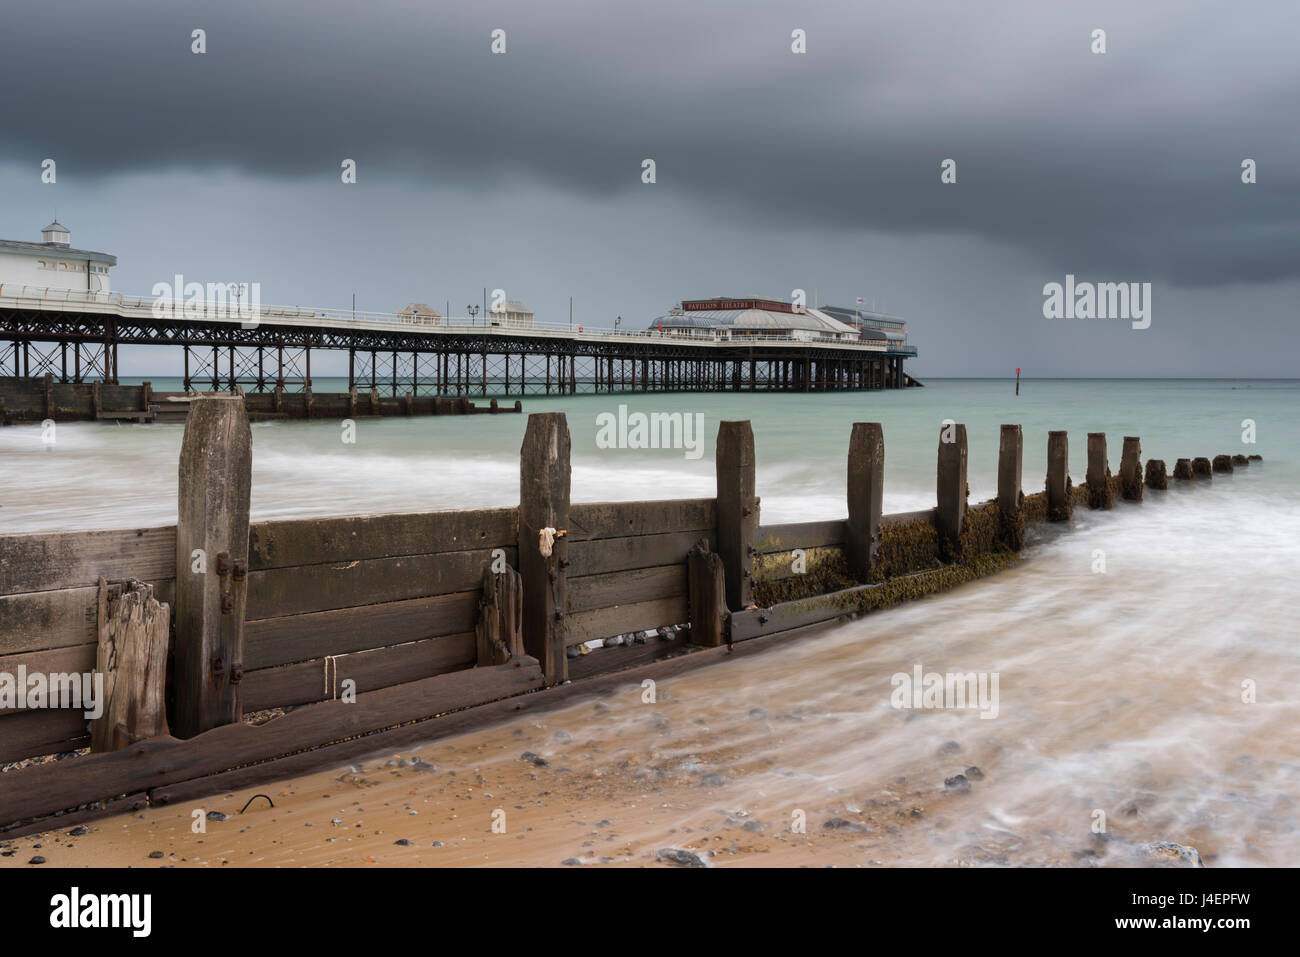 A stormy sky over the beach and pier at Cromer, Norfolk, England, United Kingdom, Europe - Stock Image